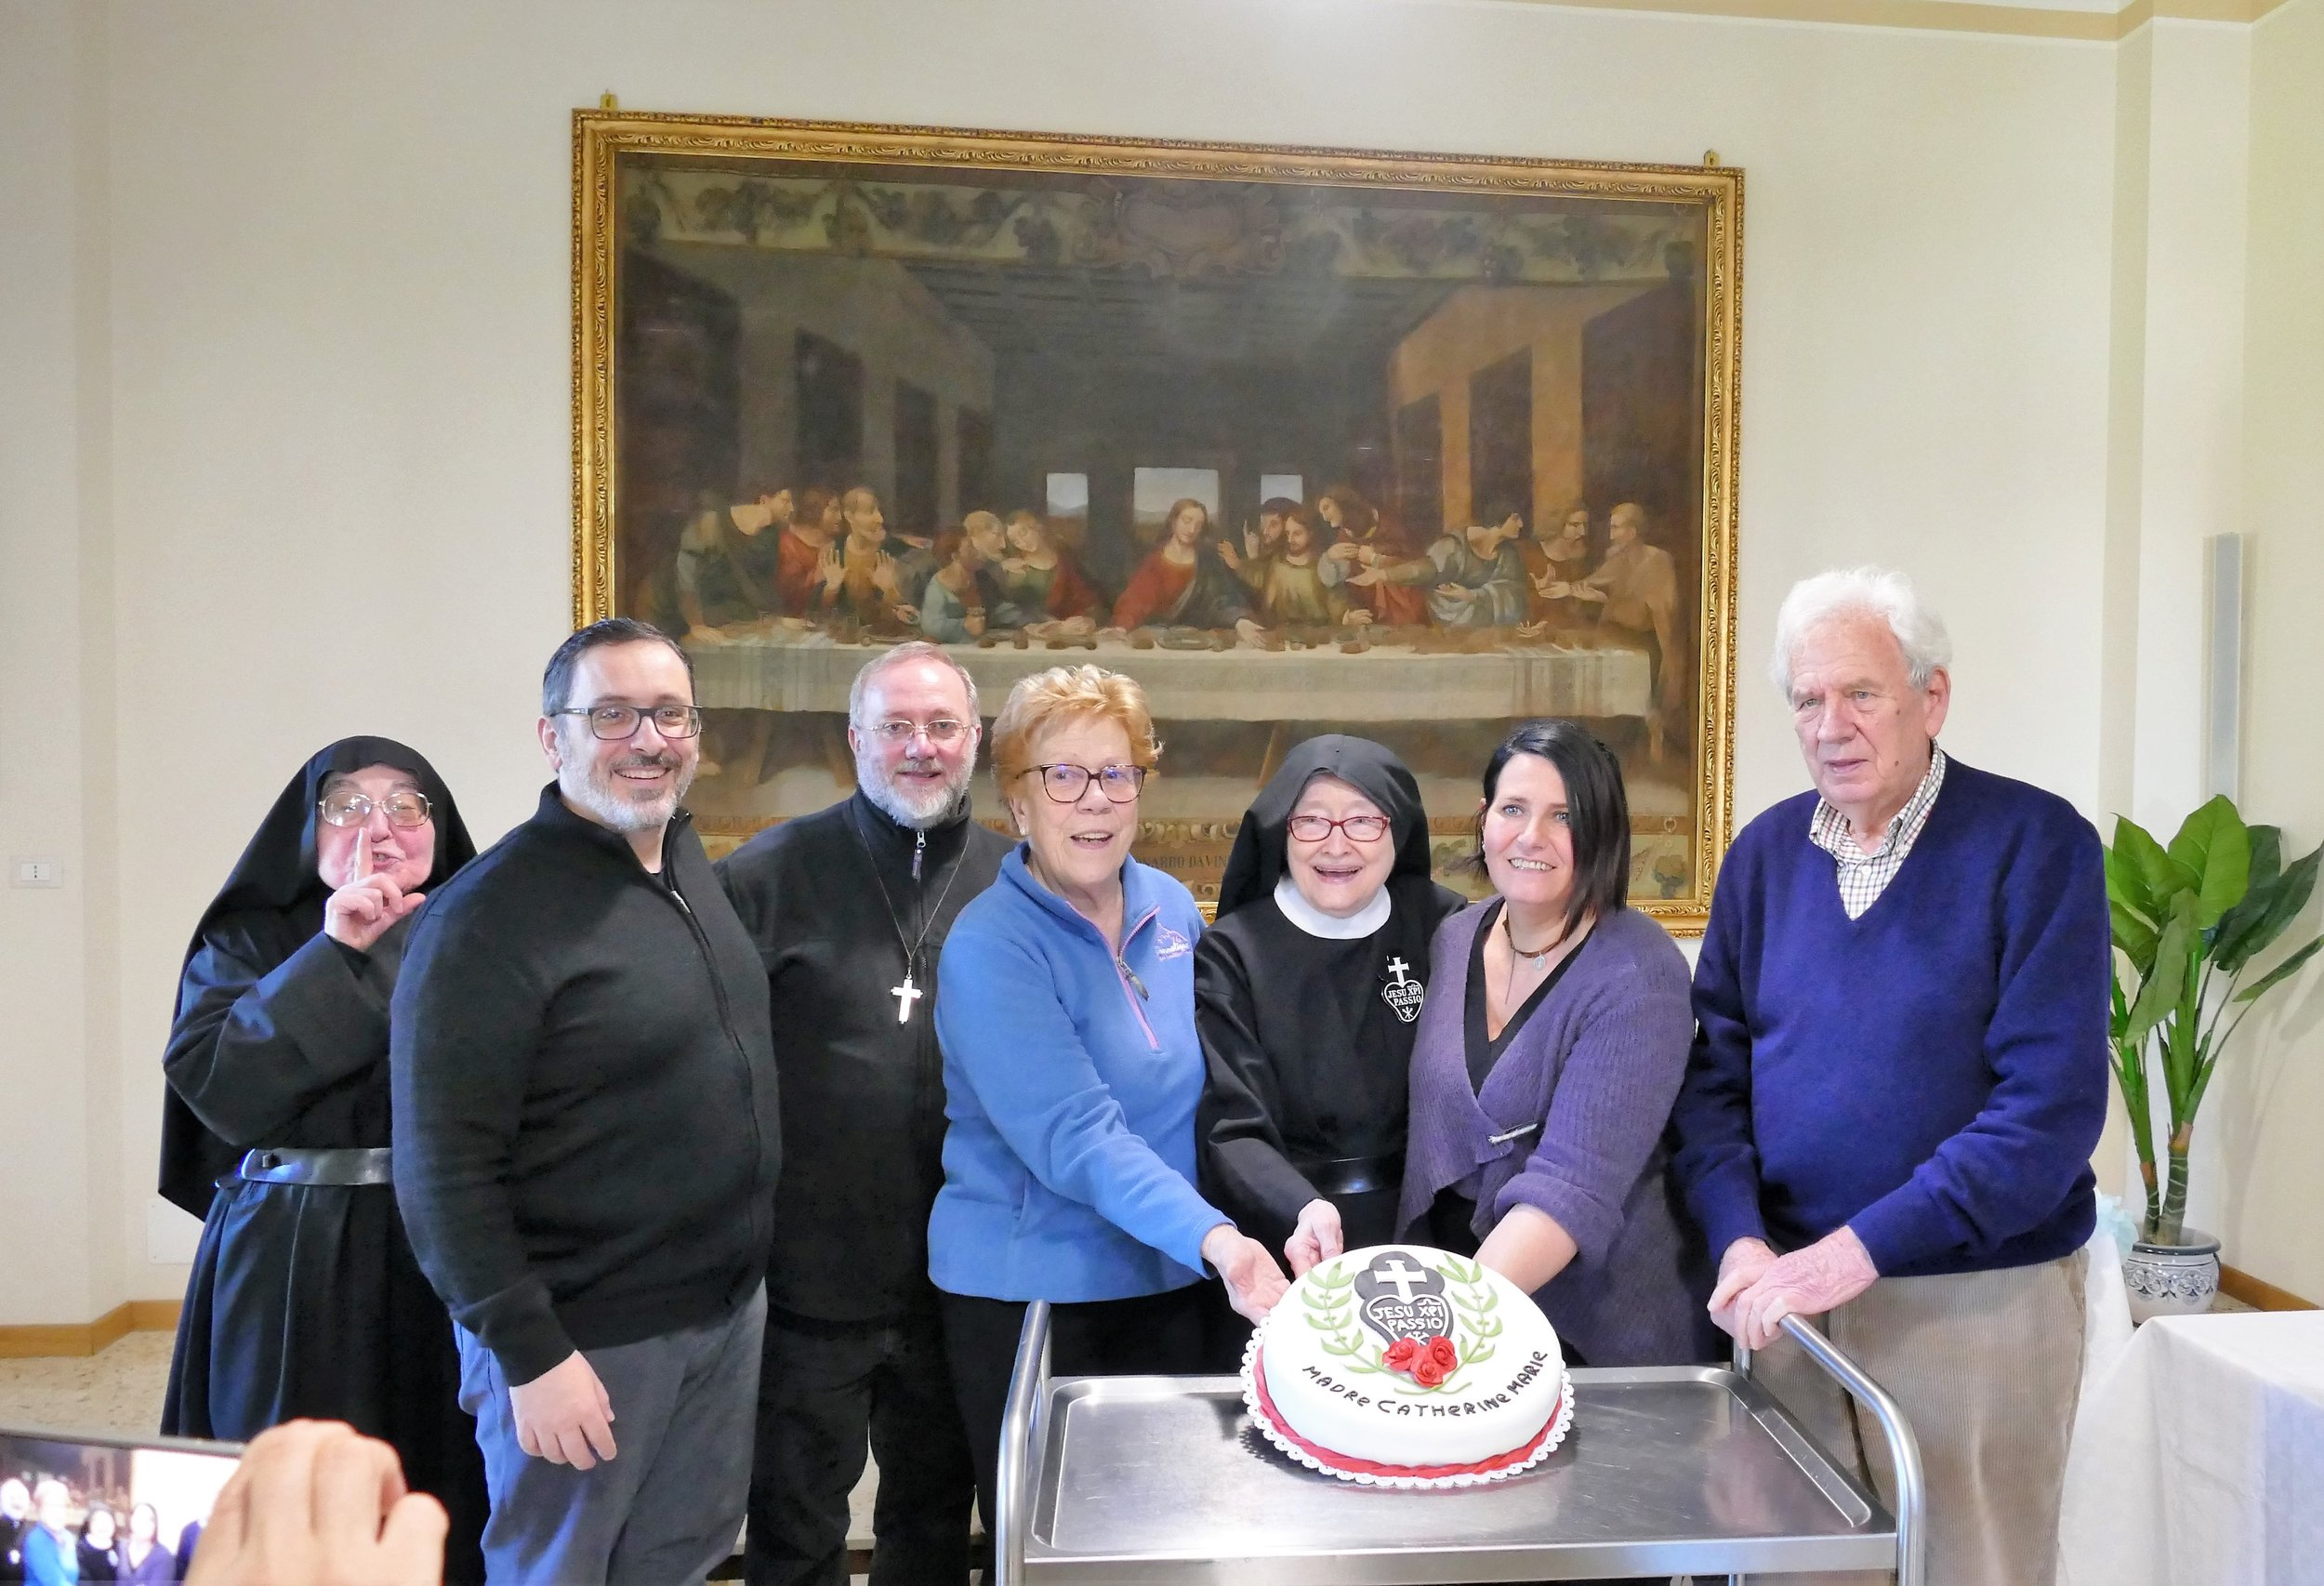 P. Marco, P. Giovanni, Rosanna, Mother Catherine Marie, Roxana, and Gino. Rosanna, Roxana, and Gino are friends of the Monastero di Santa Gemma.